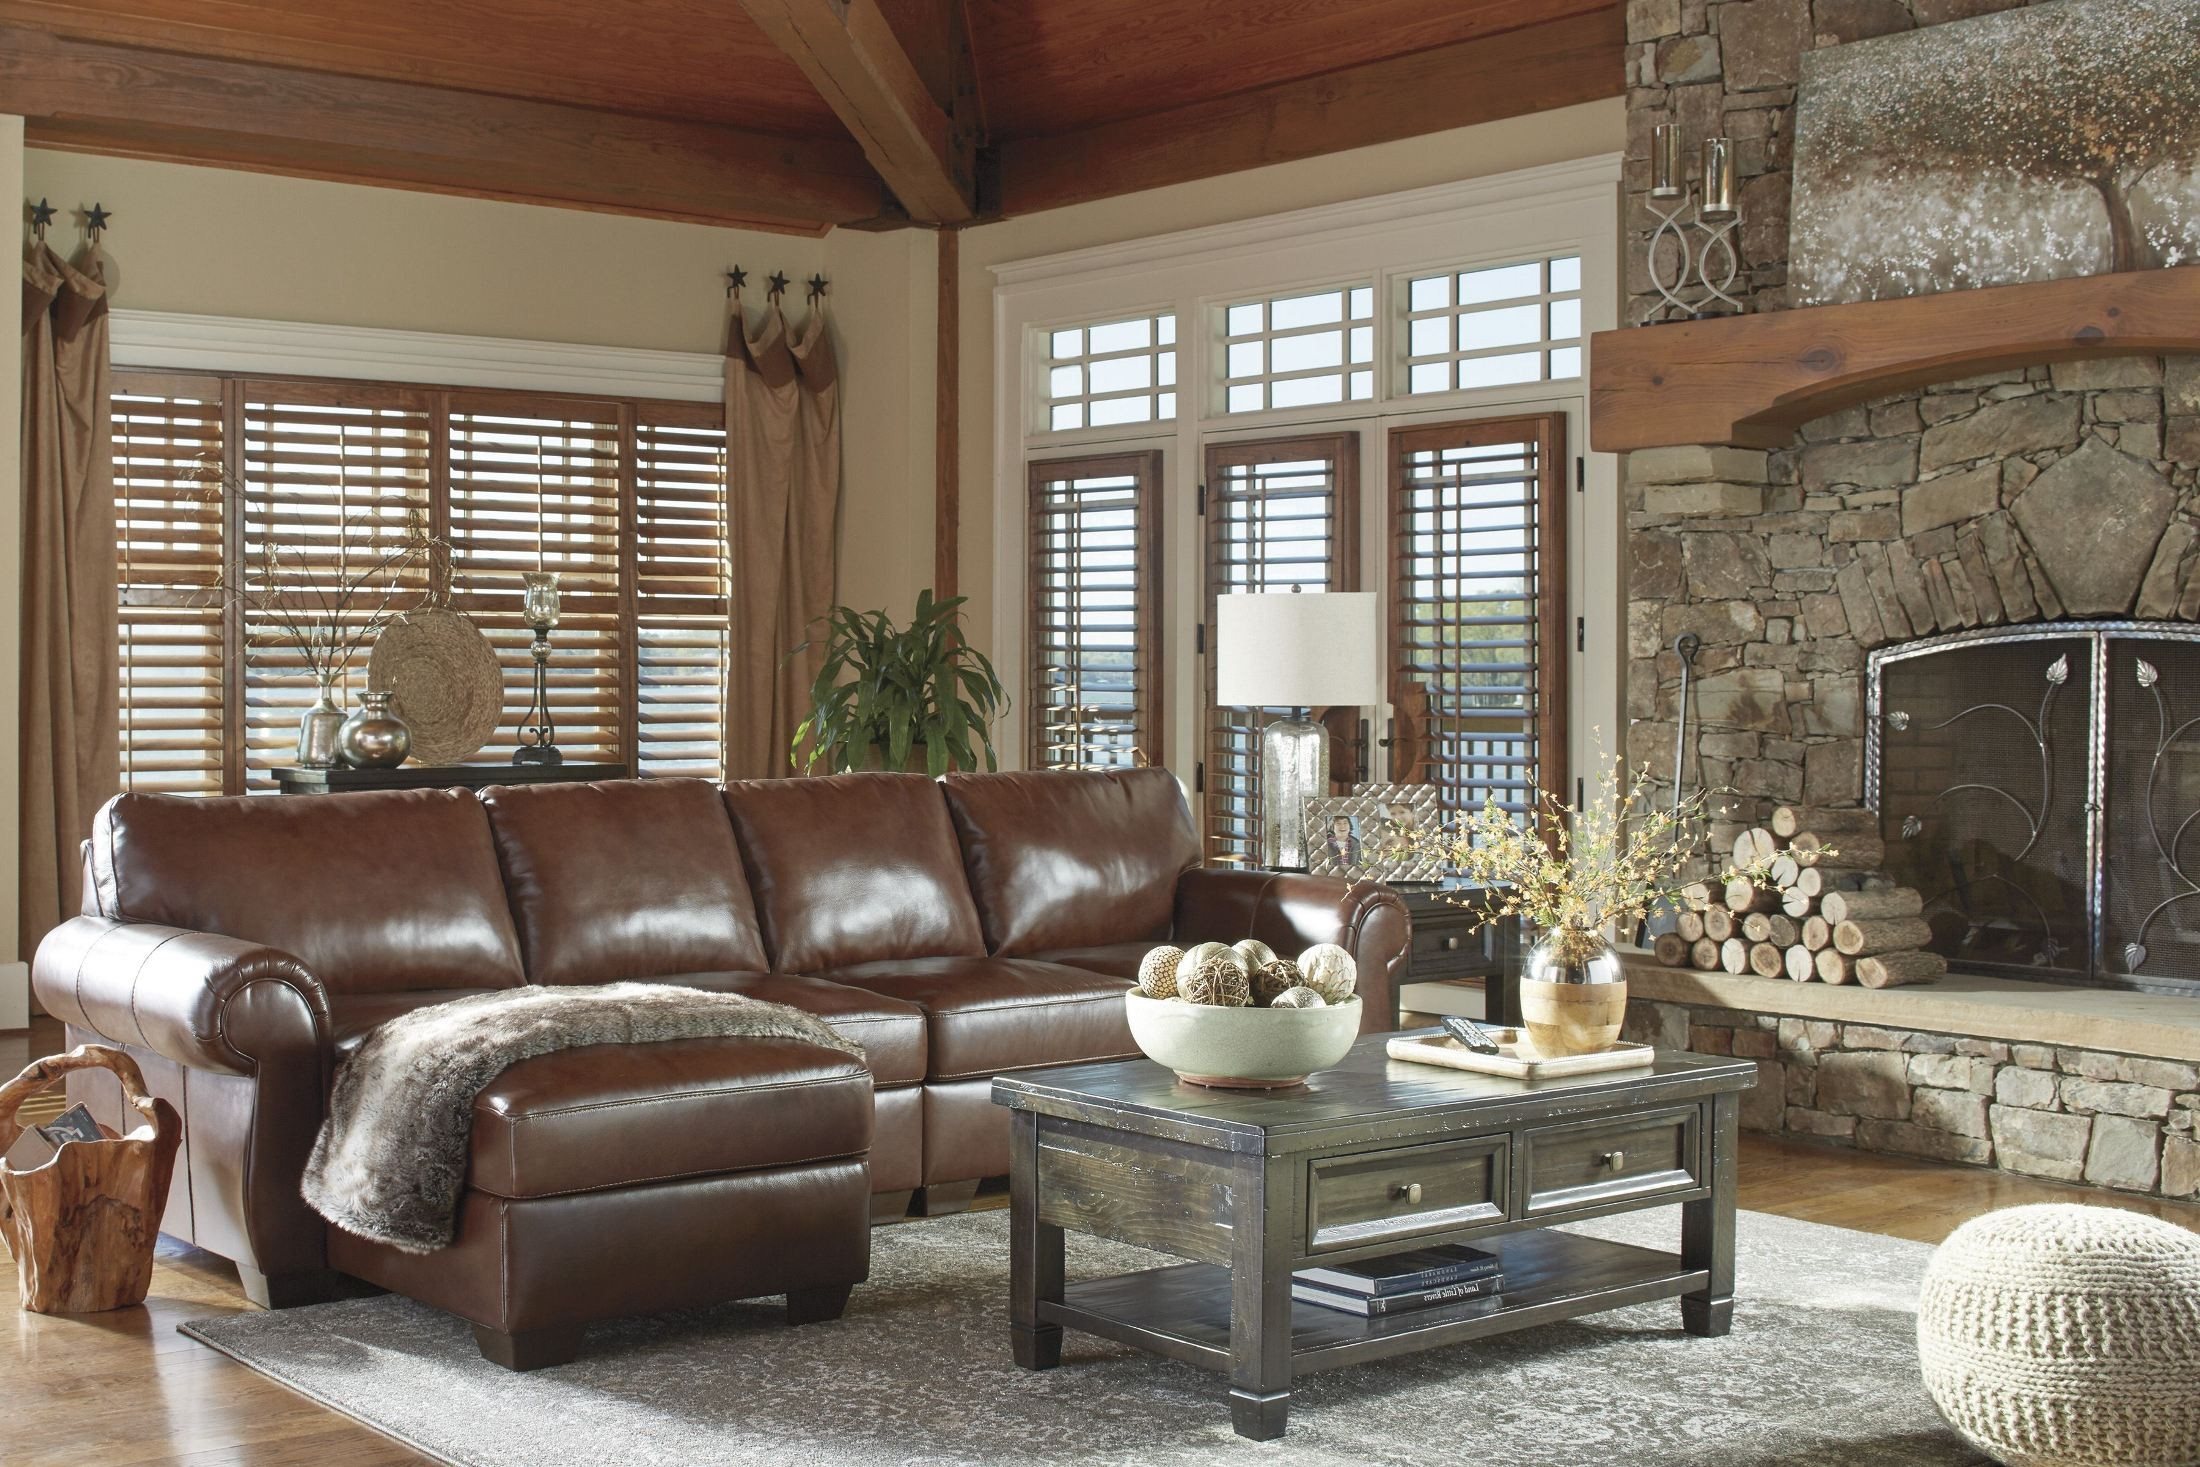 Lugoro saddle laf sectional from ashley coleman furniture for Affordable furniture 3 piece sectional in wyoming saddle